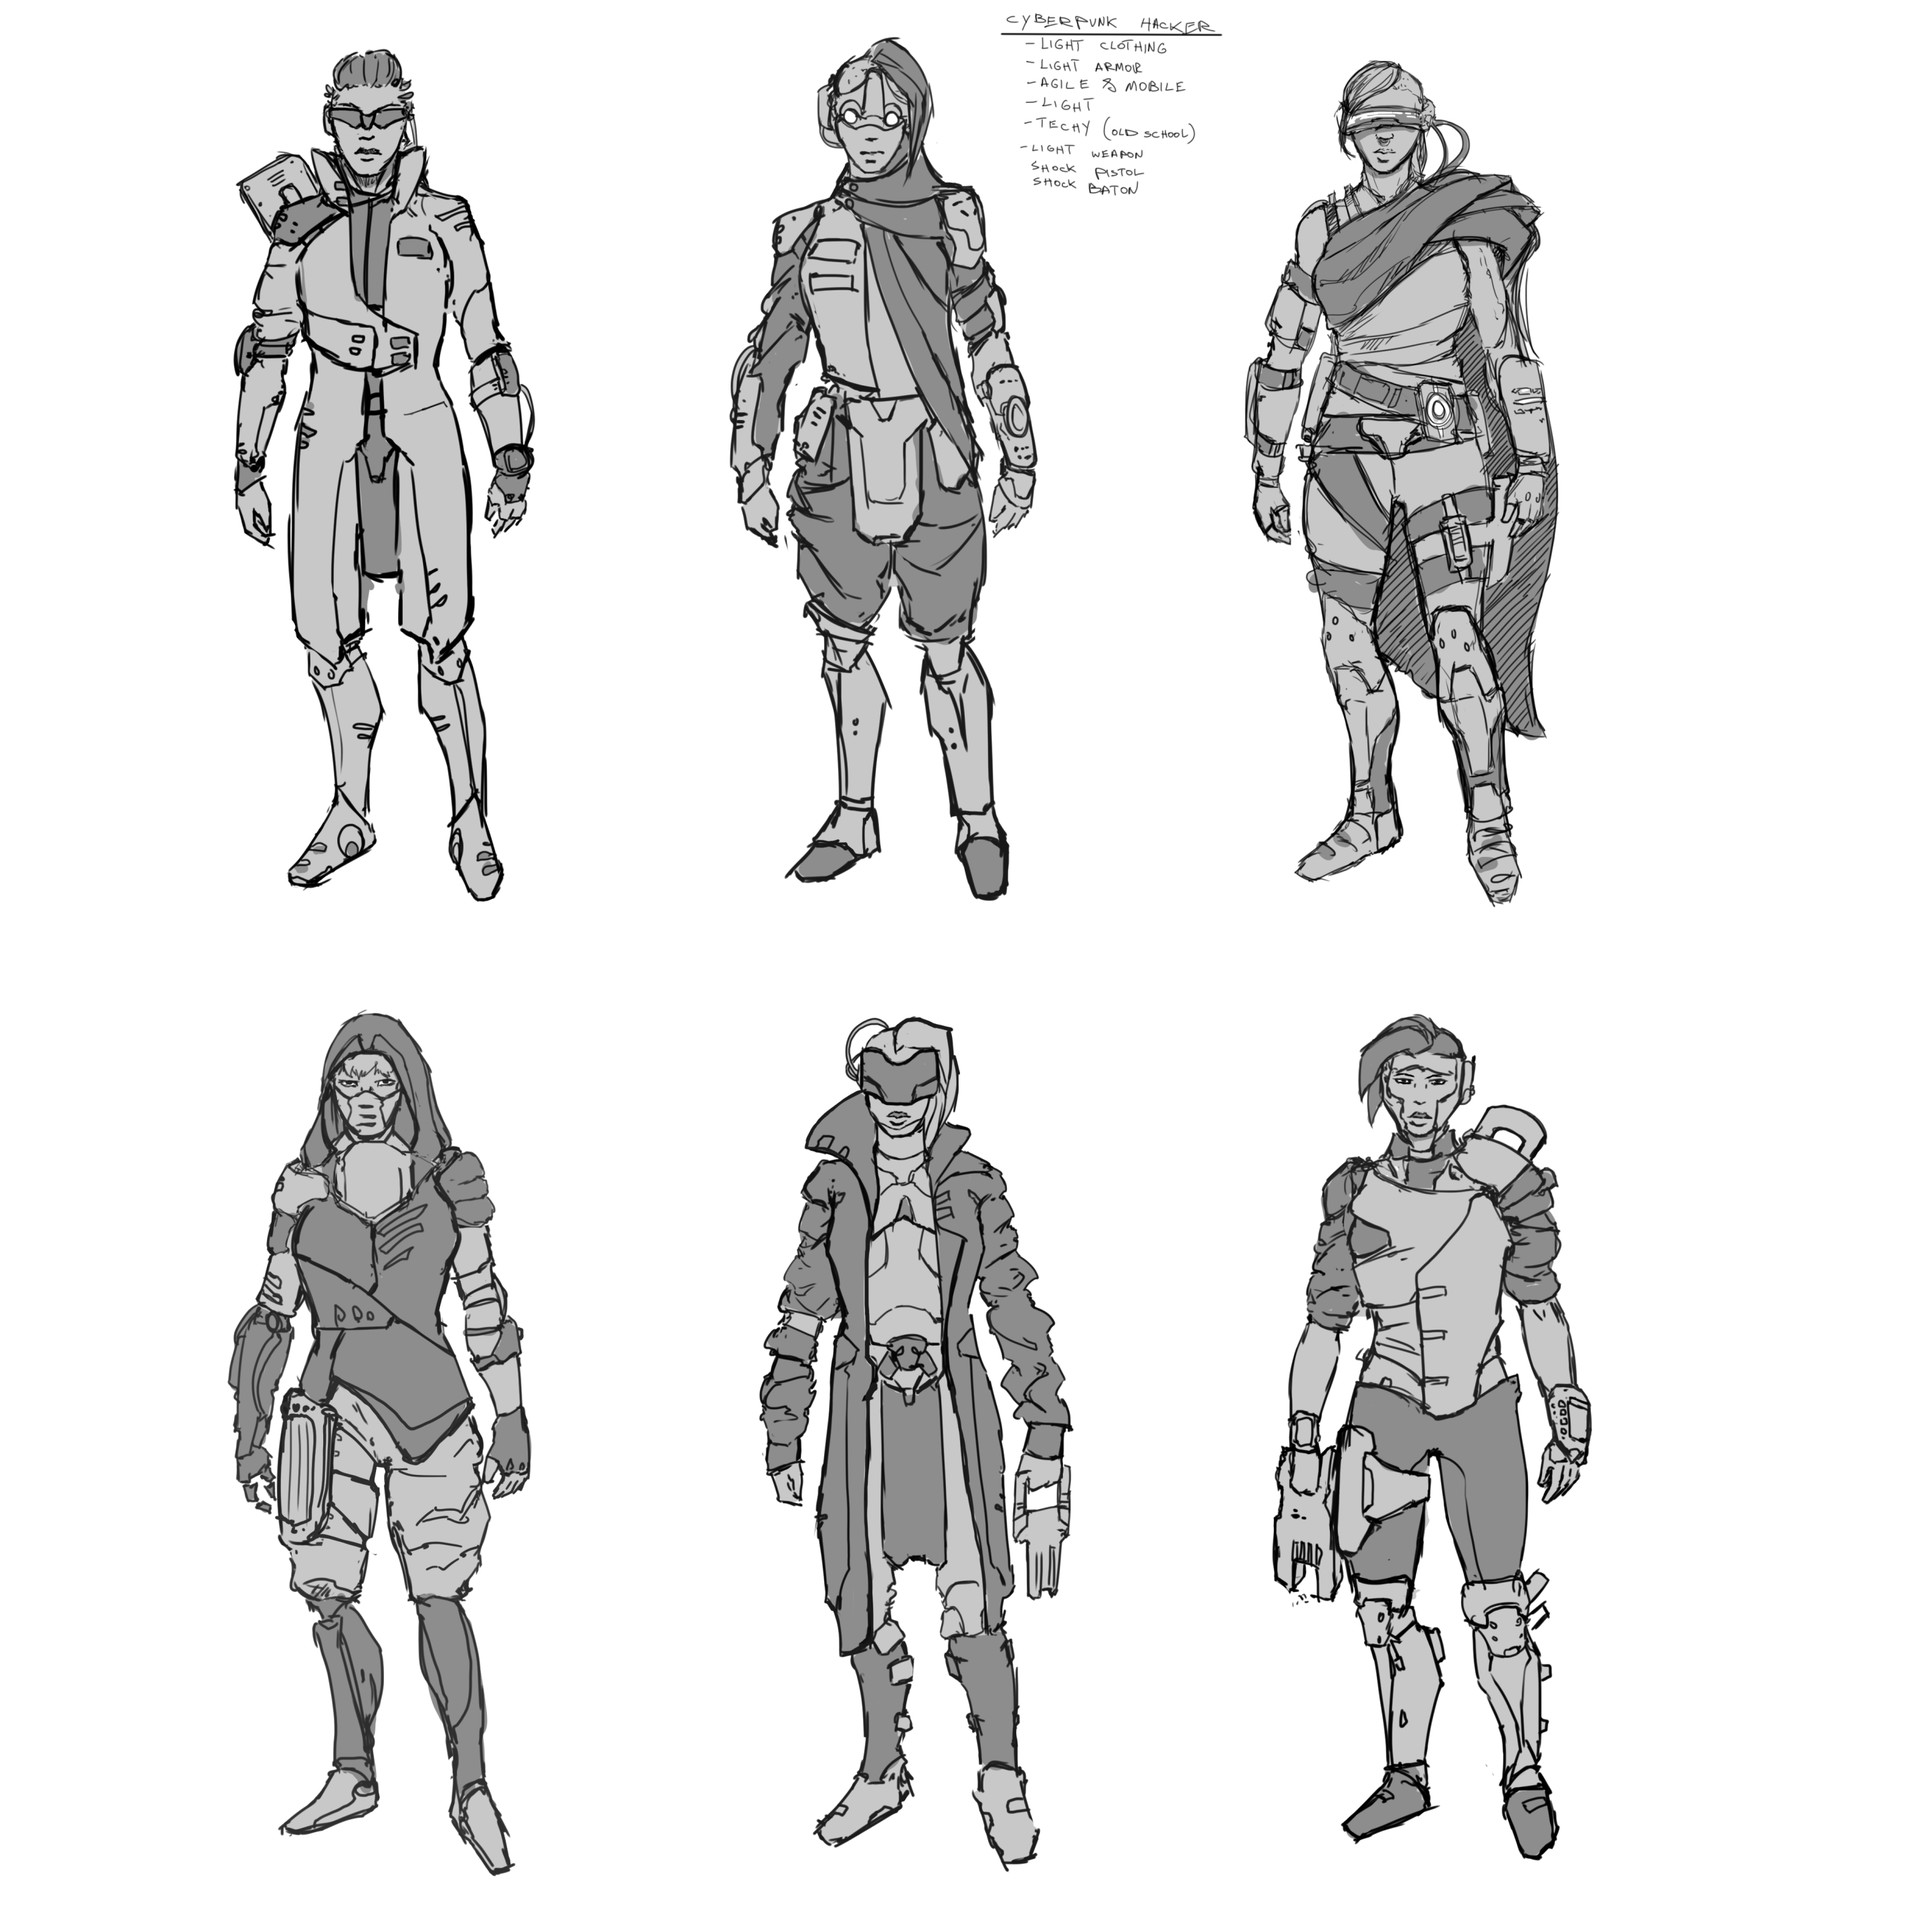 Thumbnail sketches to explore design and style of the character